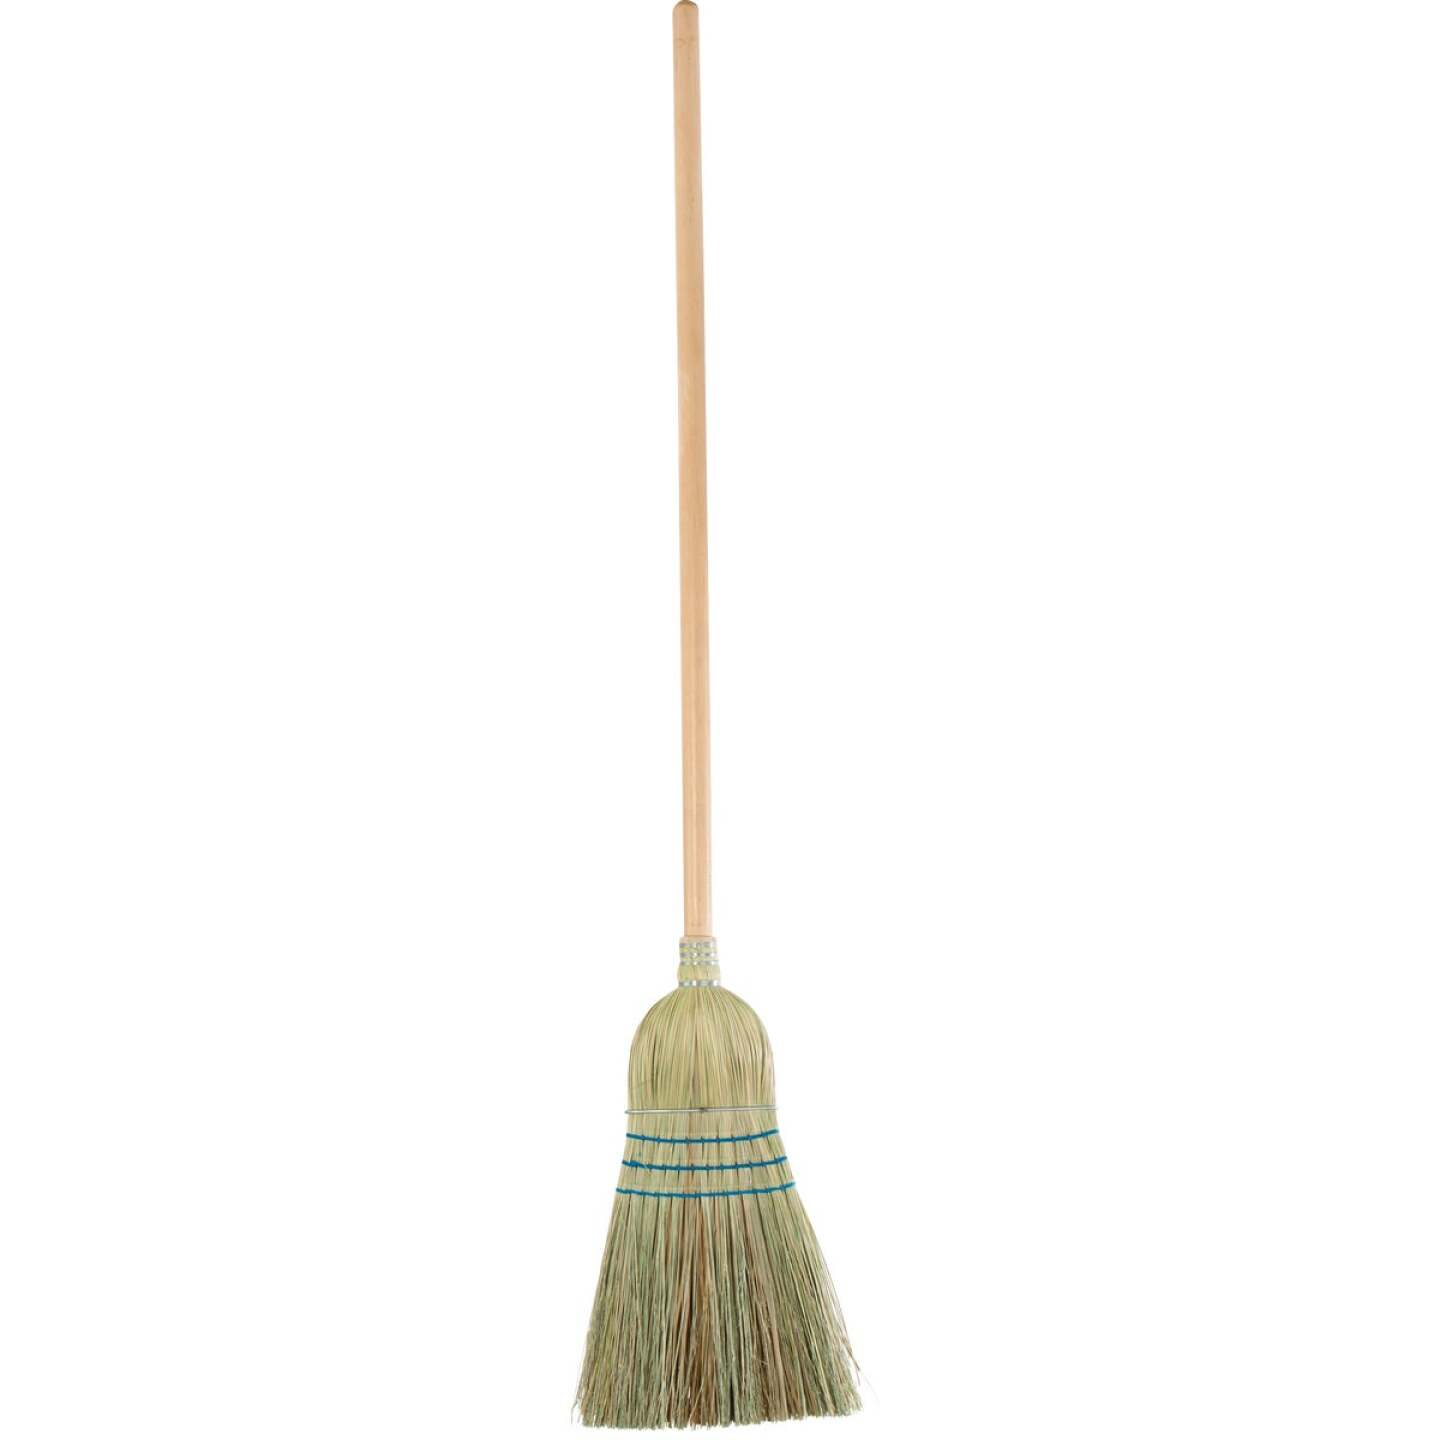 Reynera 13 In. W. x 42 In. L. Natural Hardwood Handle Good Quality Corn Broom Image 2